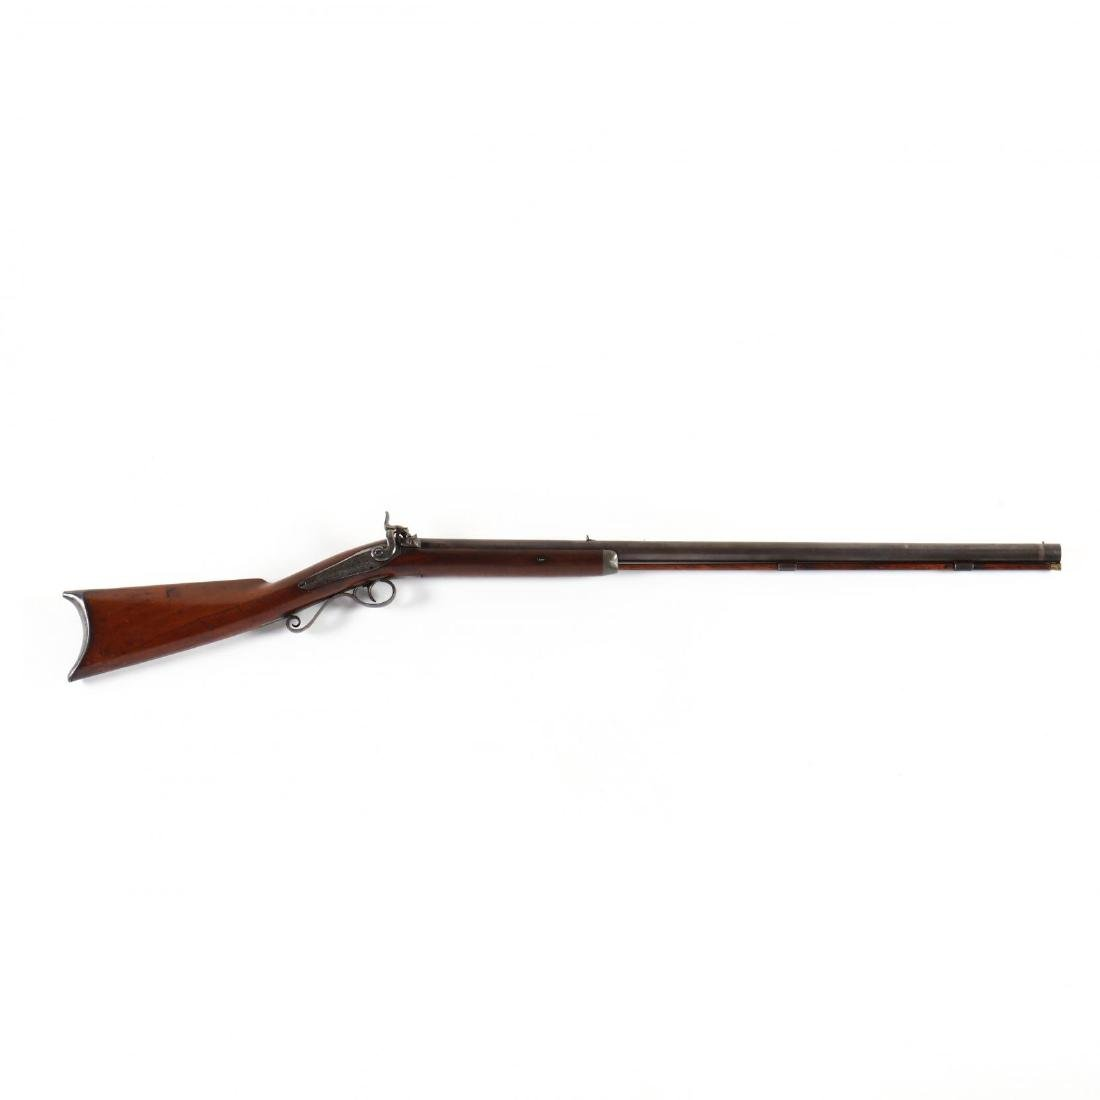 Rare W. Roberts Dated Percussion Rifle